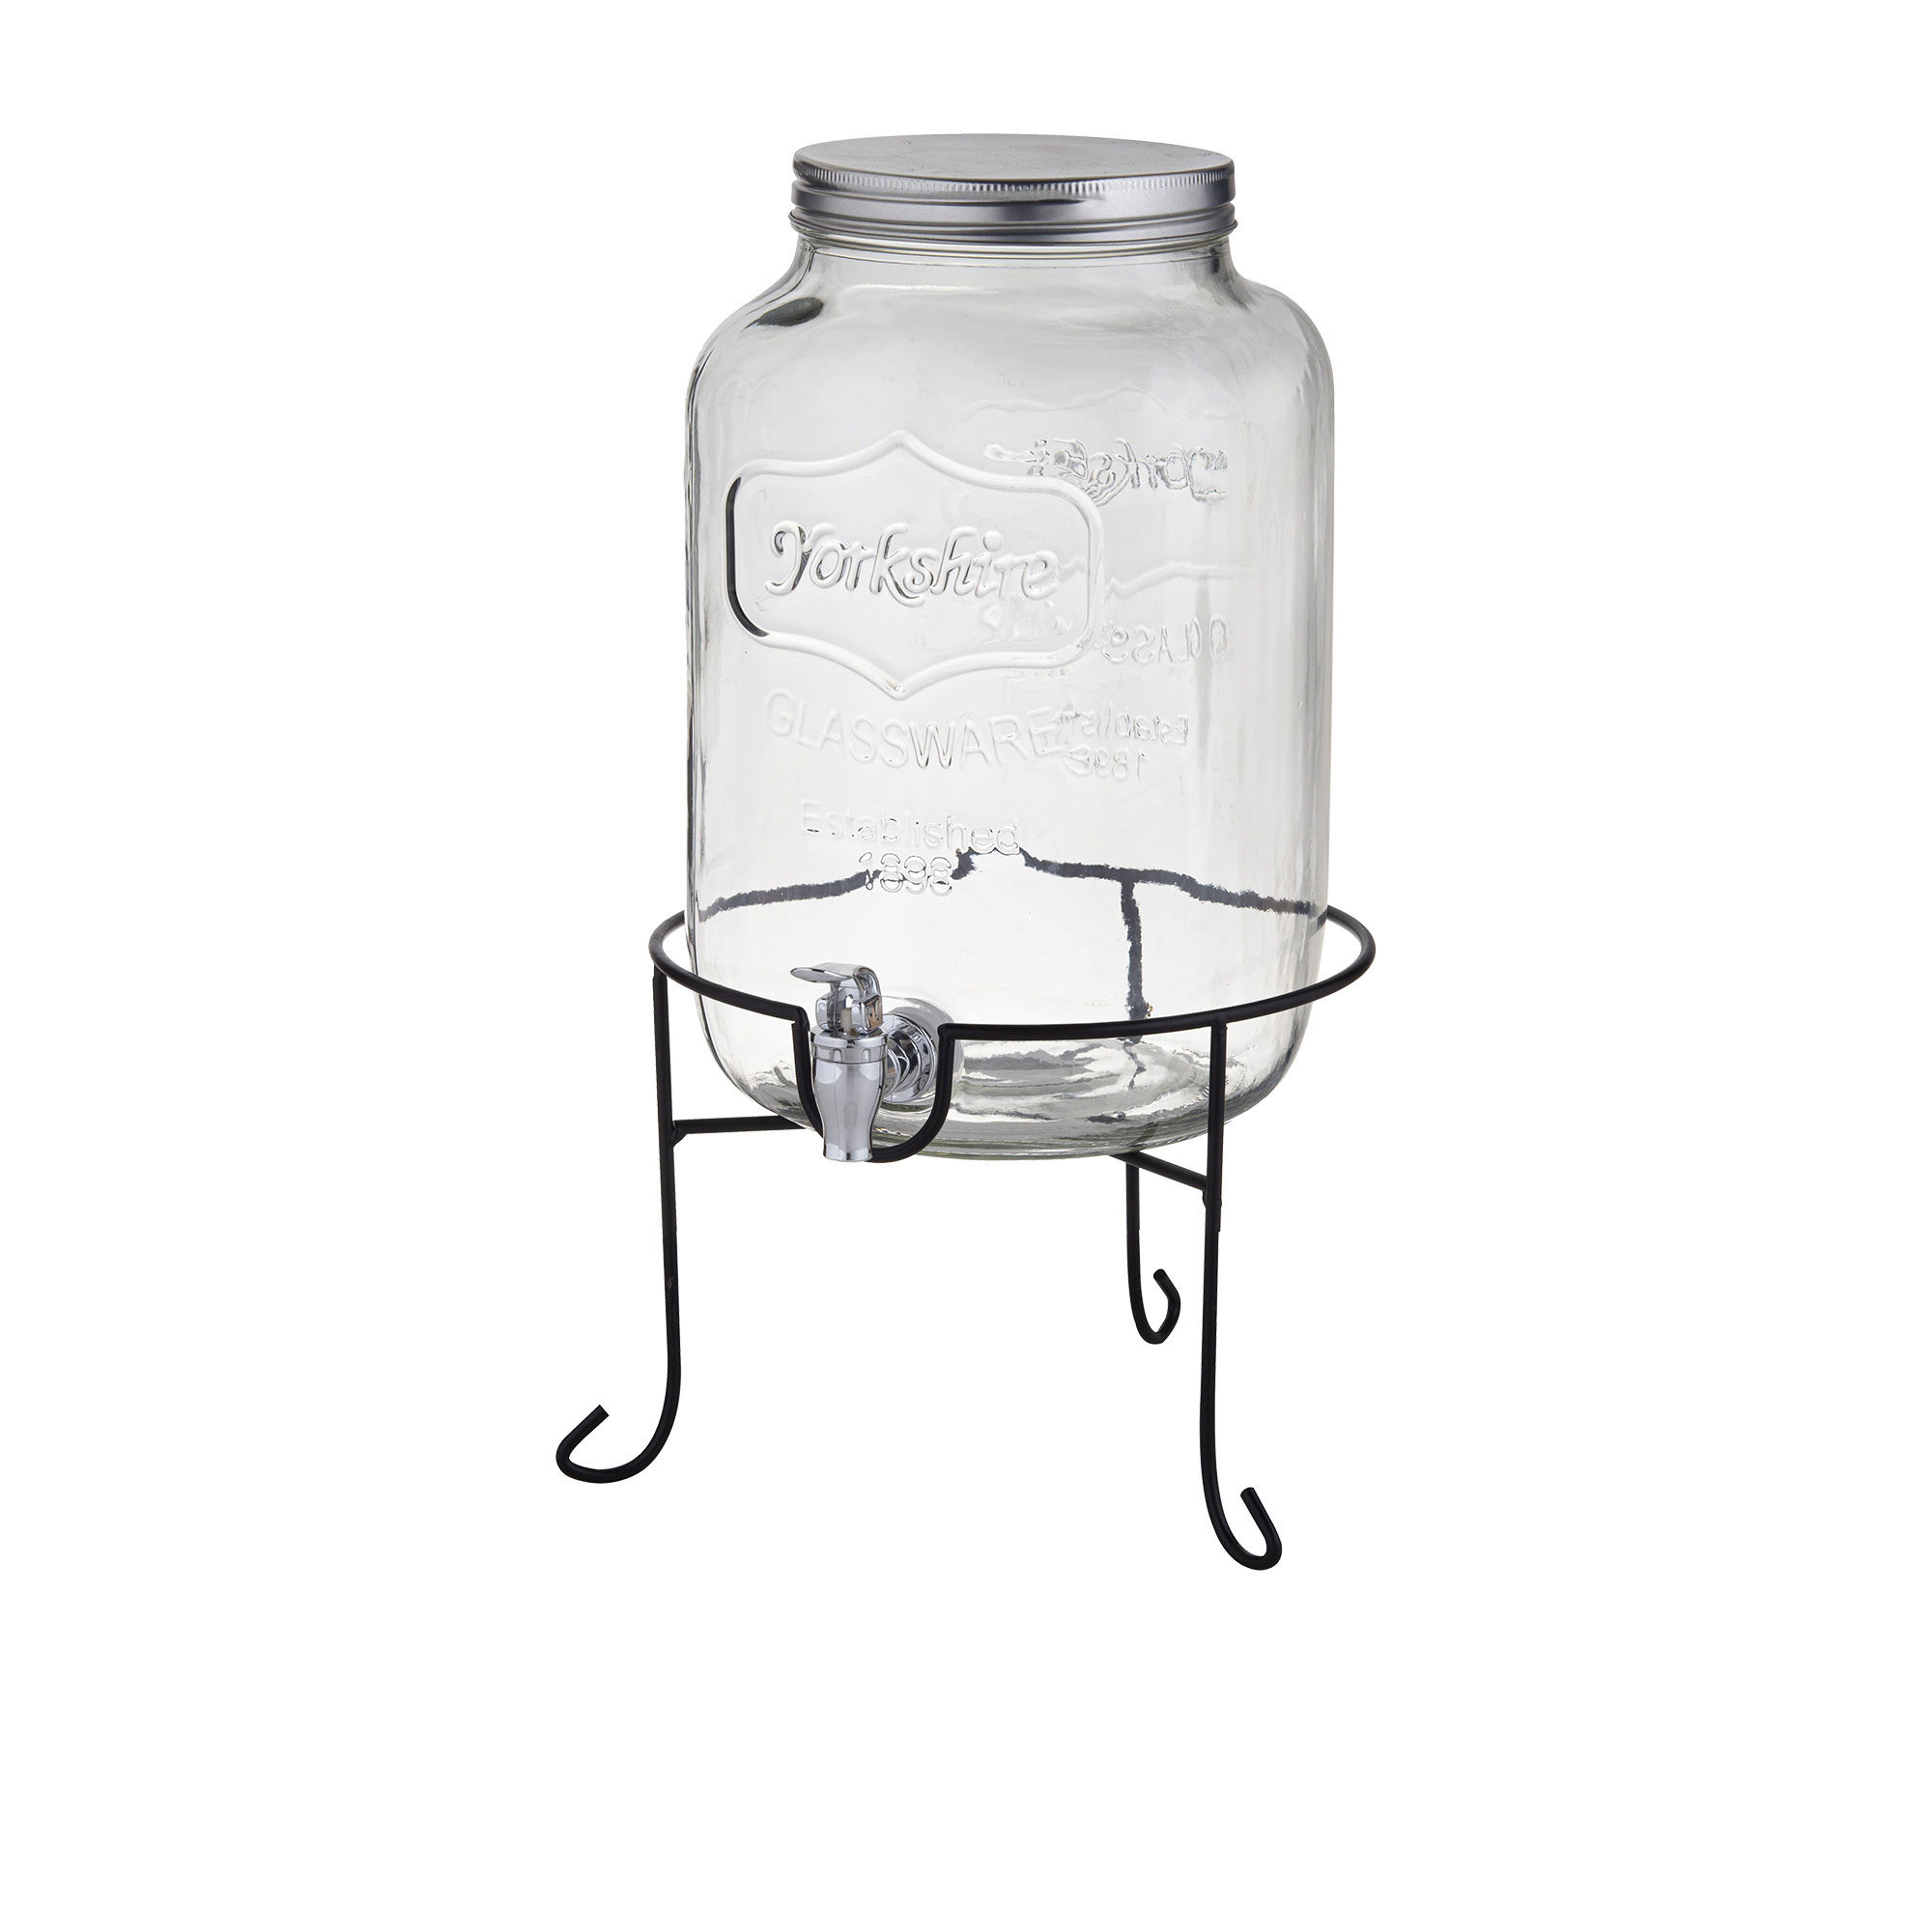 Davis & Waddell Retro Drink Dispenser w/ Stand 7.5L